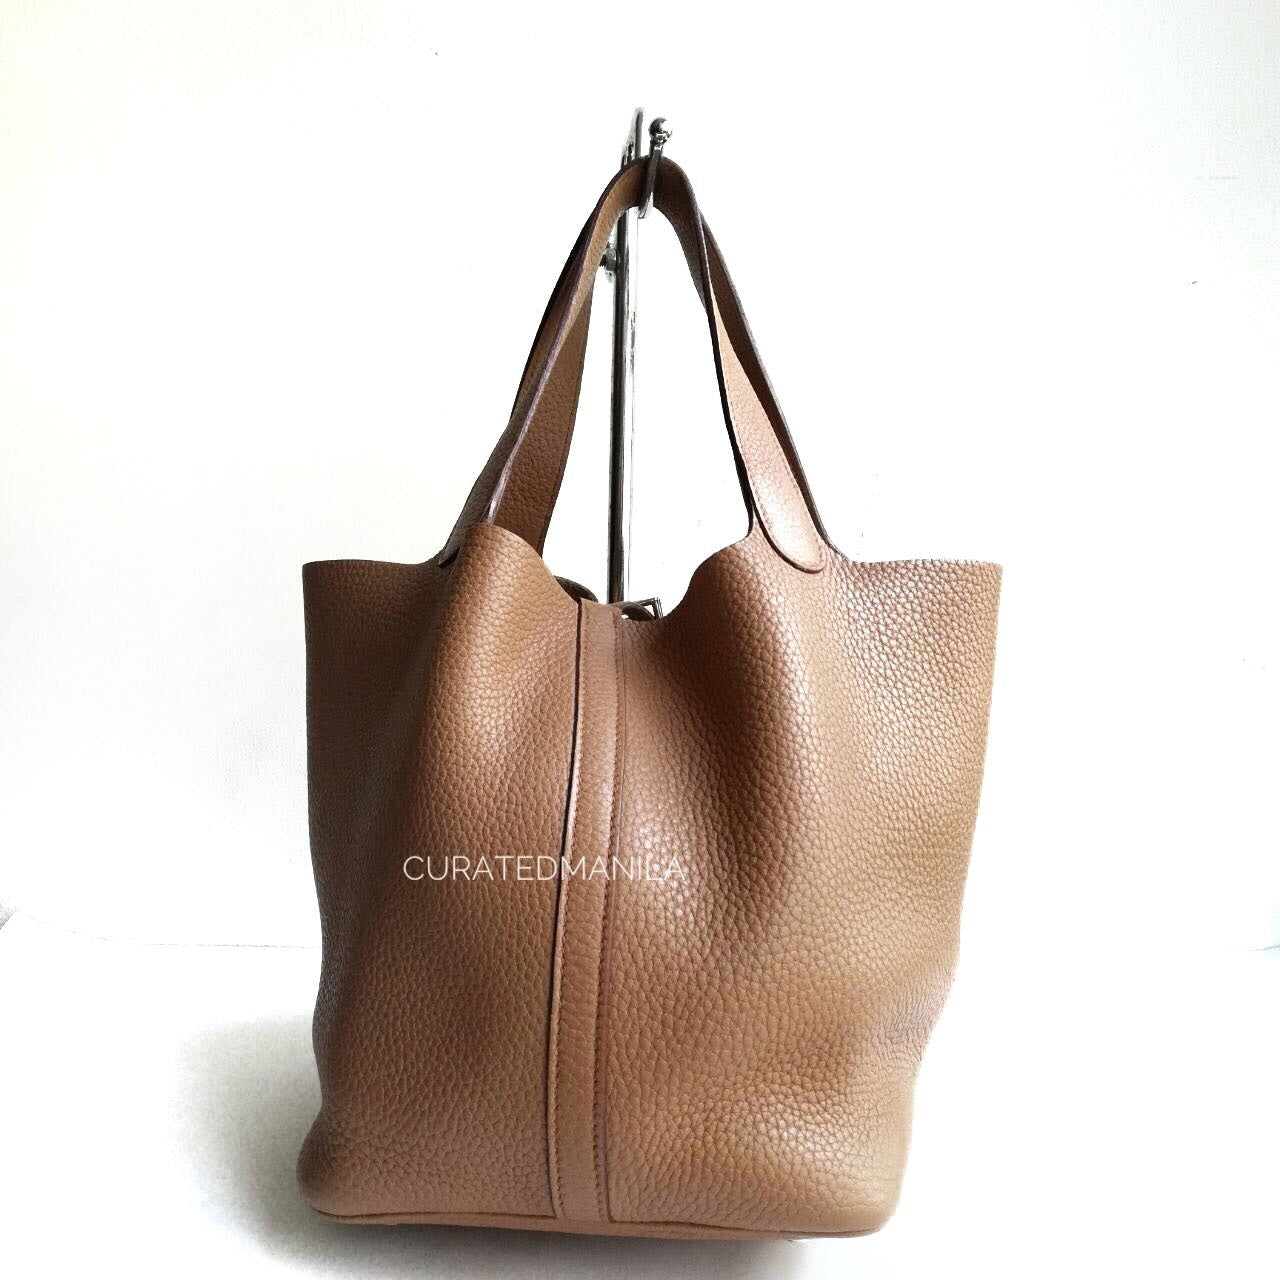 9fa8c8f2acbb italy hermes birkin bag 30 tabac camel clemence leather silver hardware  303f9 31580  order hermes picotin 22 black hermes picotin 22 in camel  tobacco d0853 ...